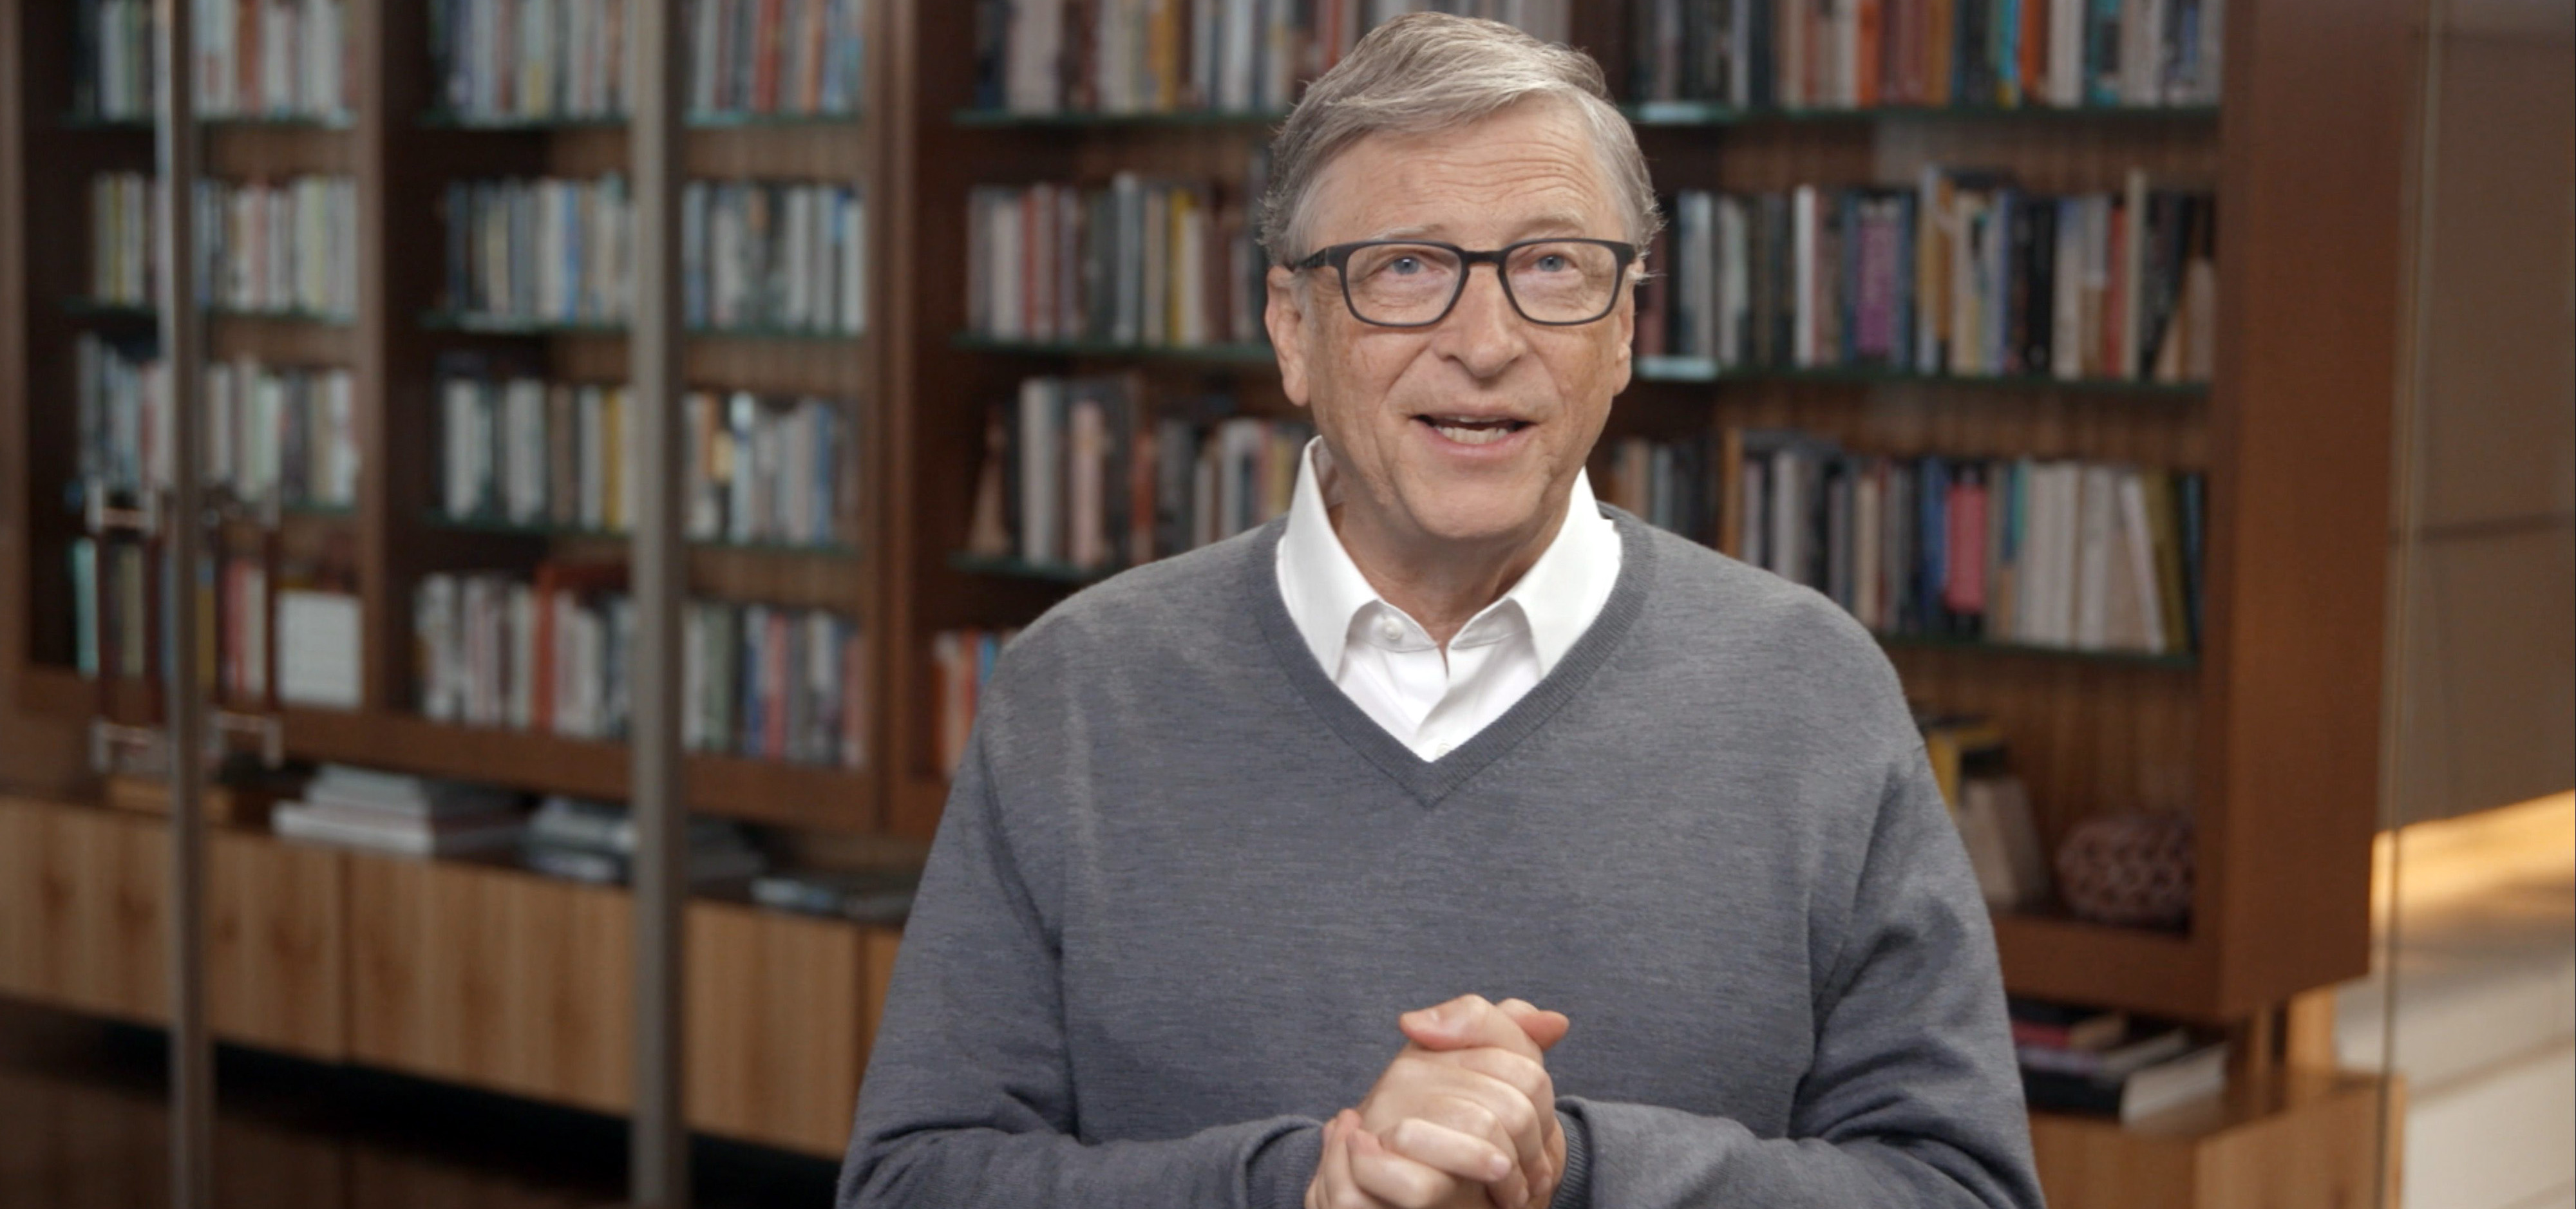 Bill Gates Teases Details of Climate Change Book